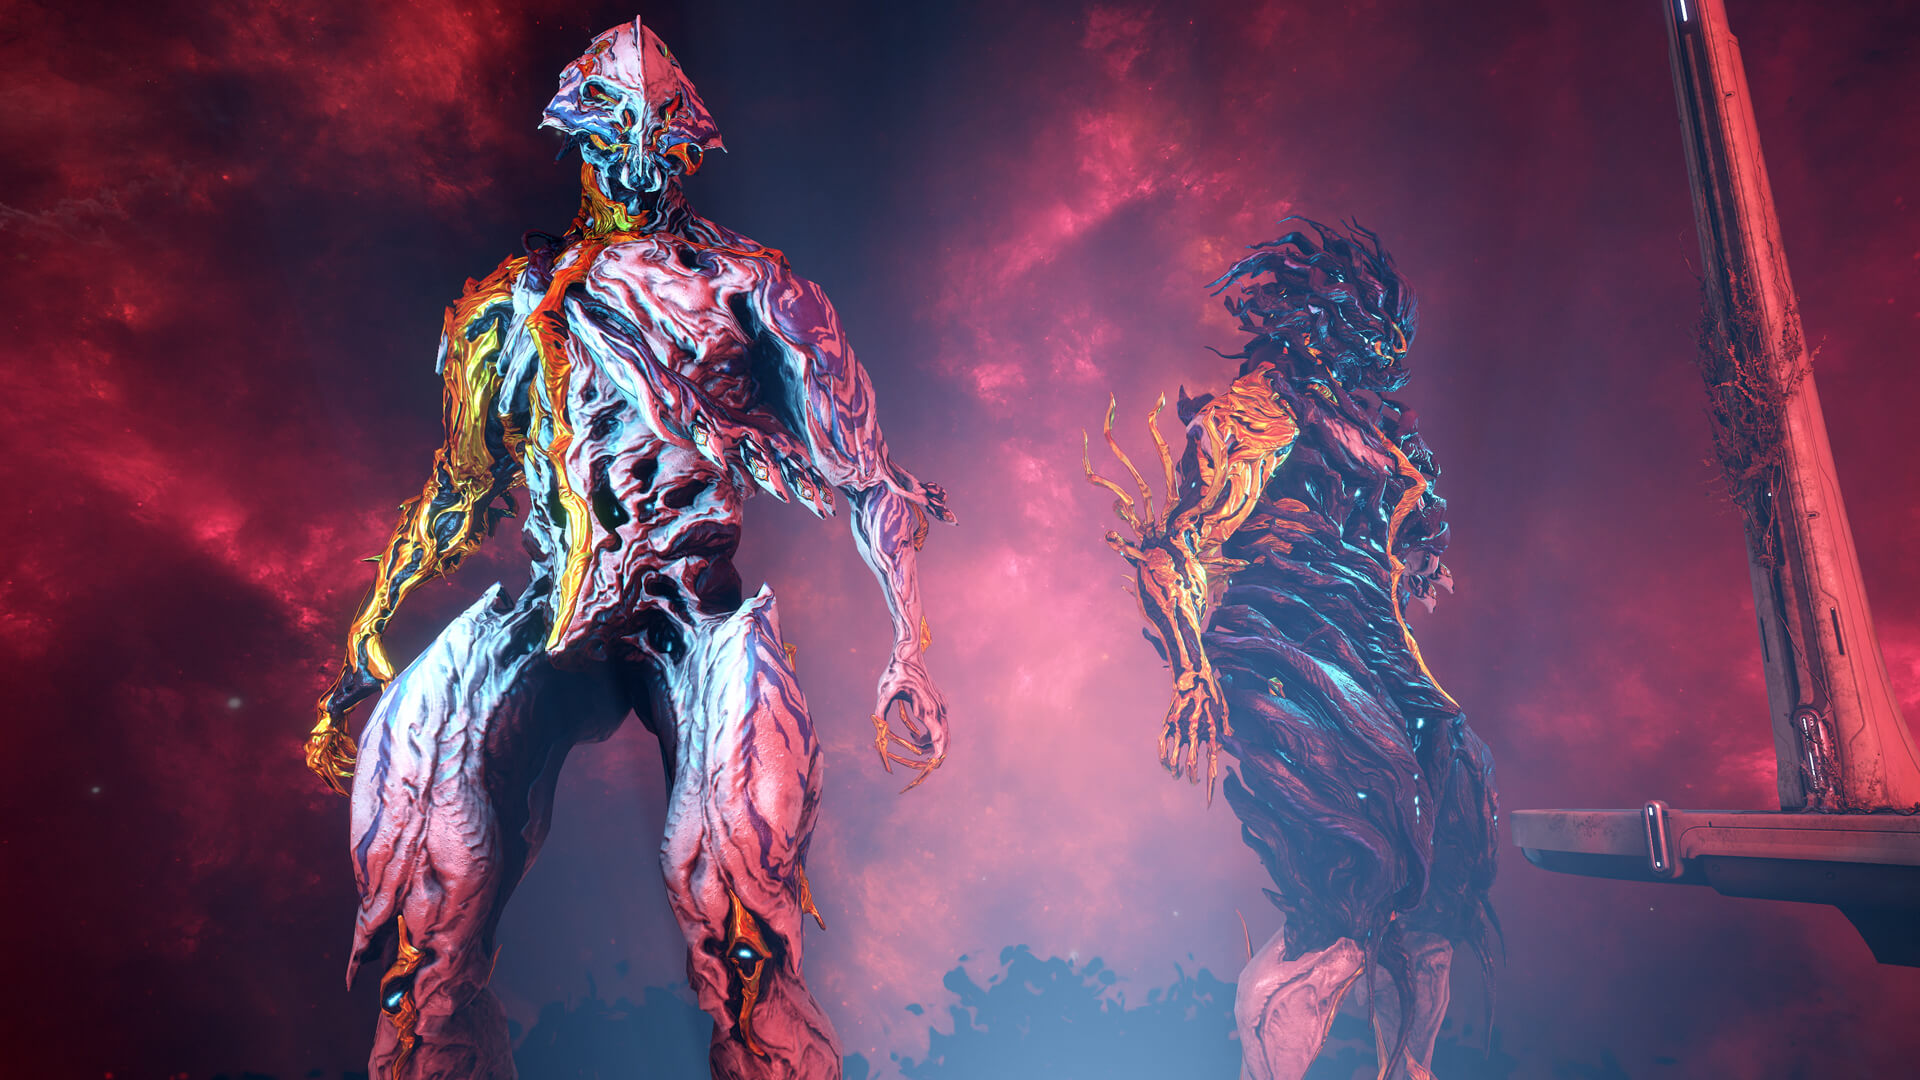 Nidus Prime is large and in charge.